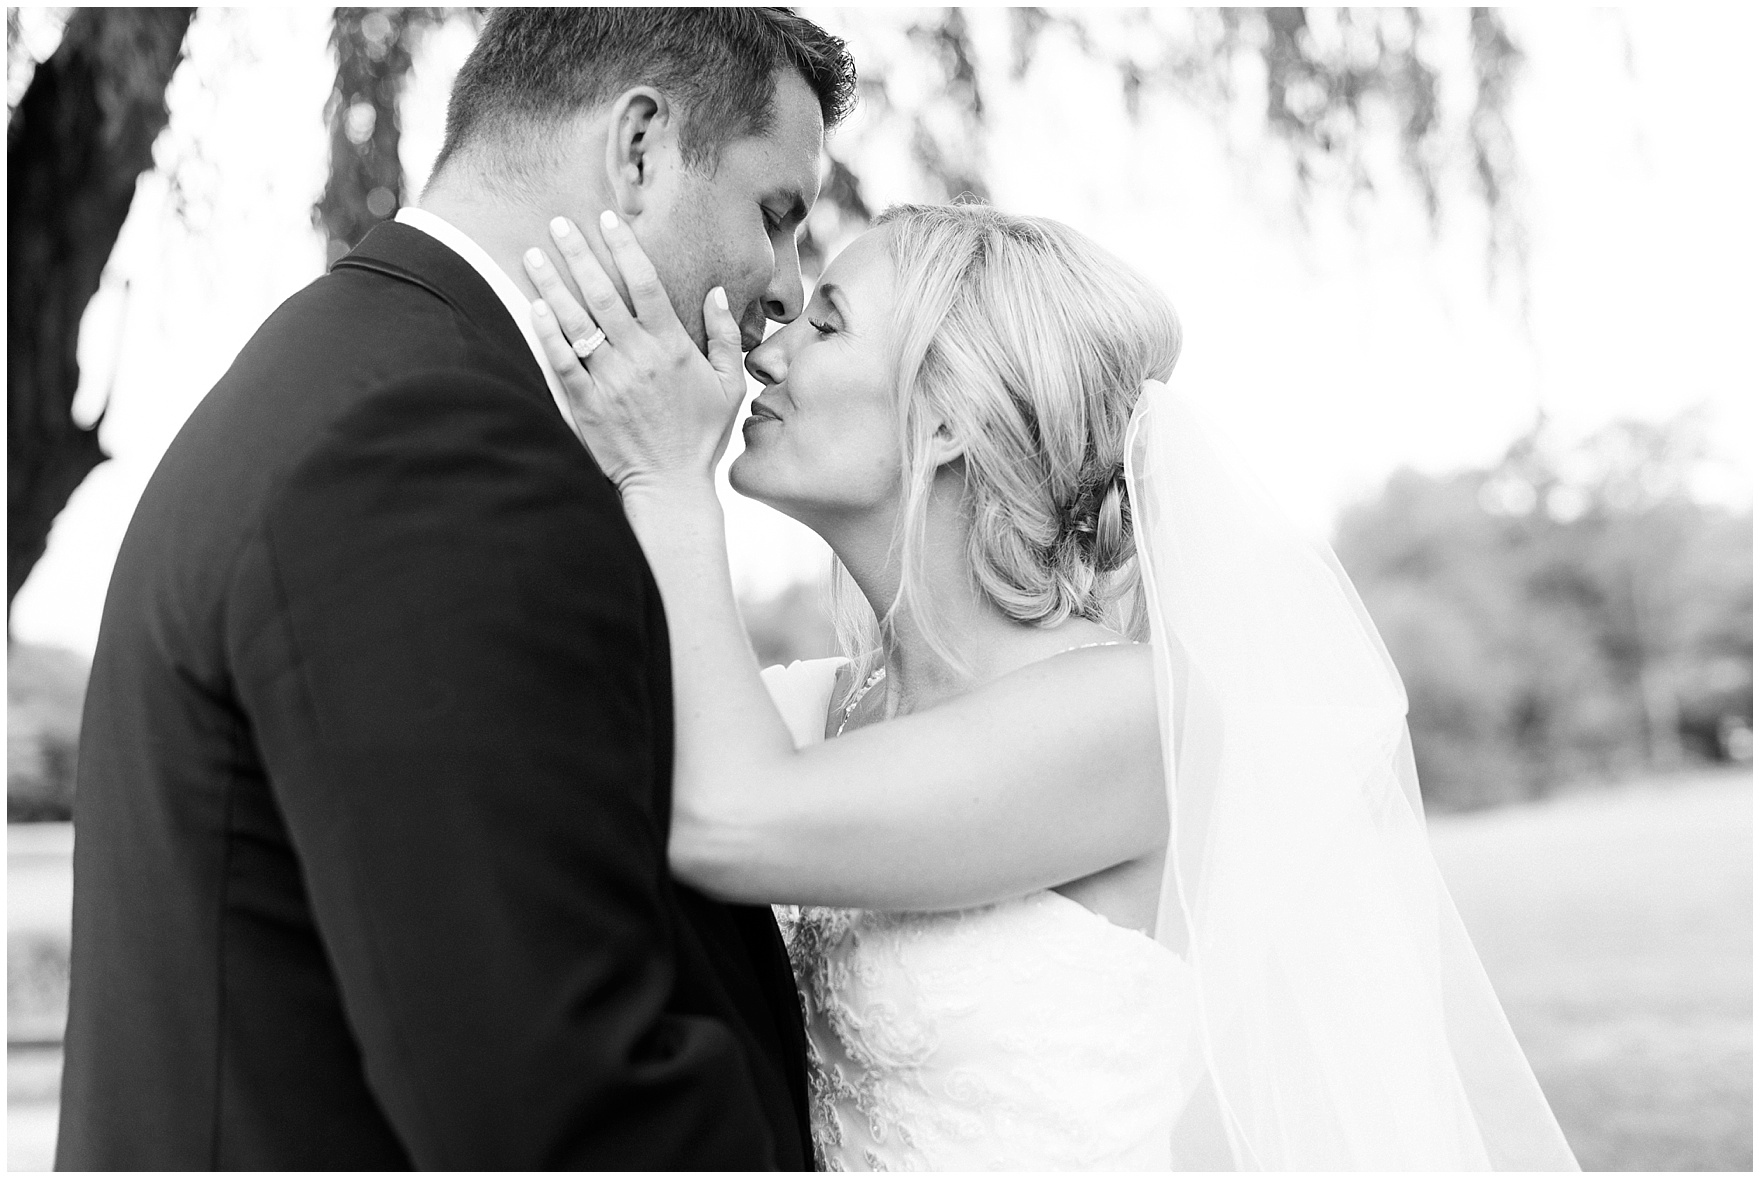 A bride and groom kiss for the camera at their Itasca Country Club Illinois wedding.